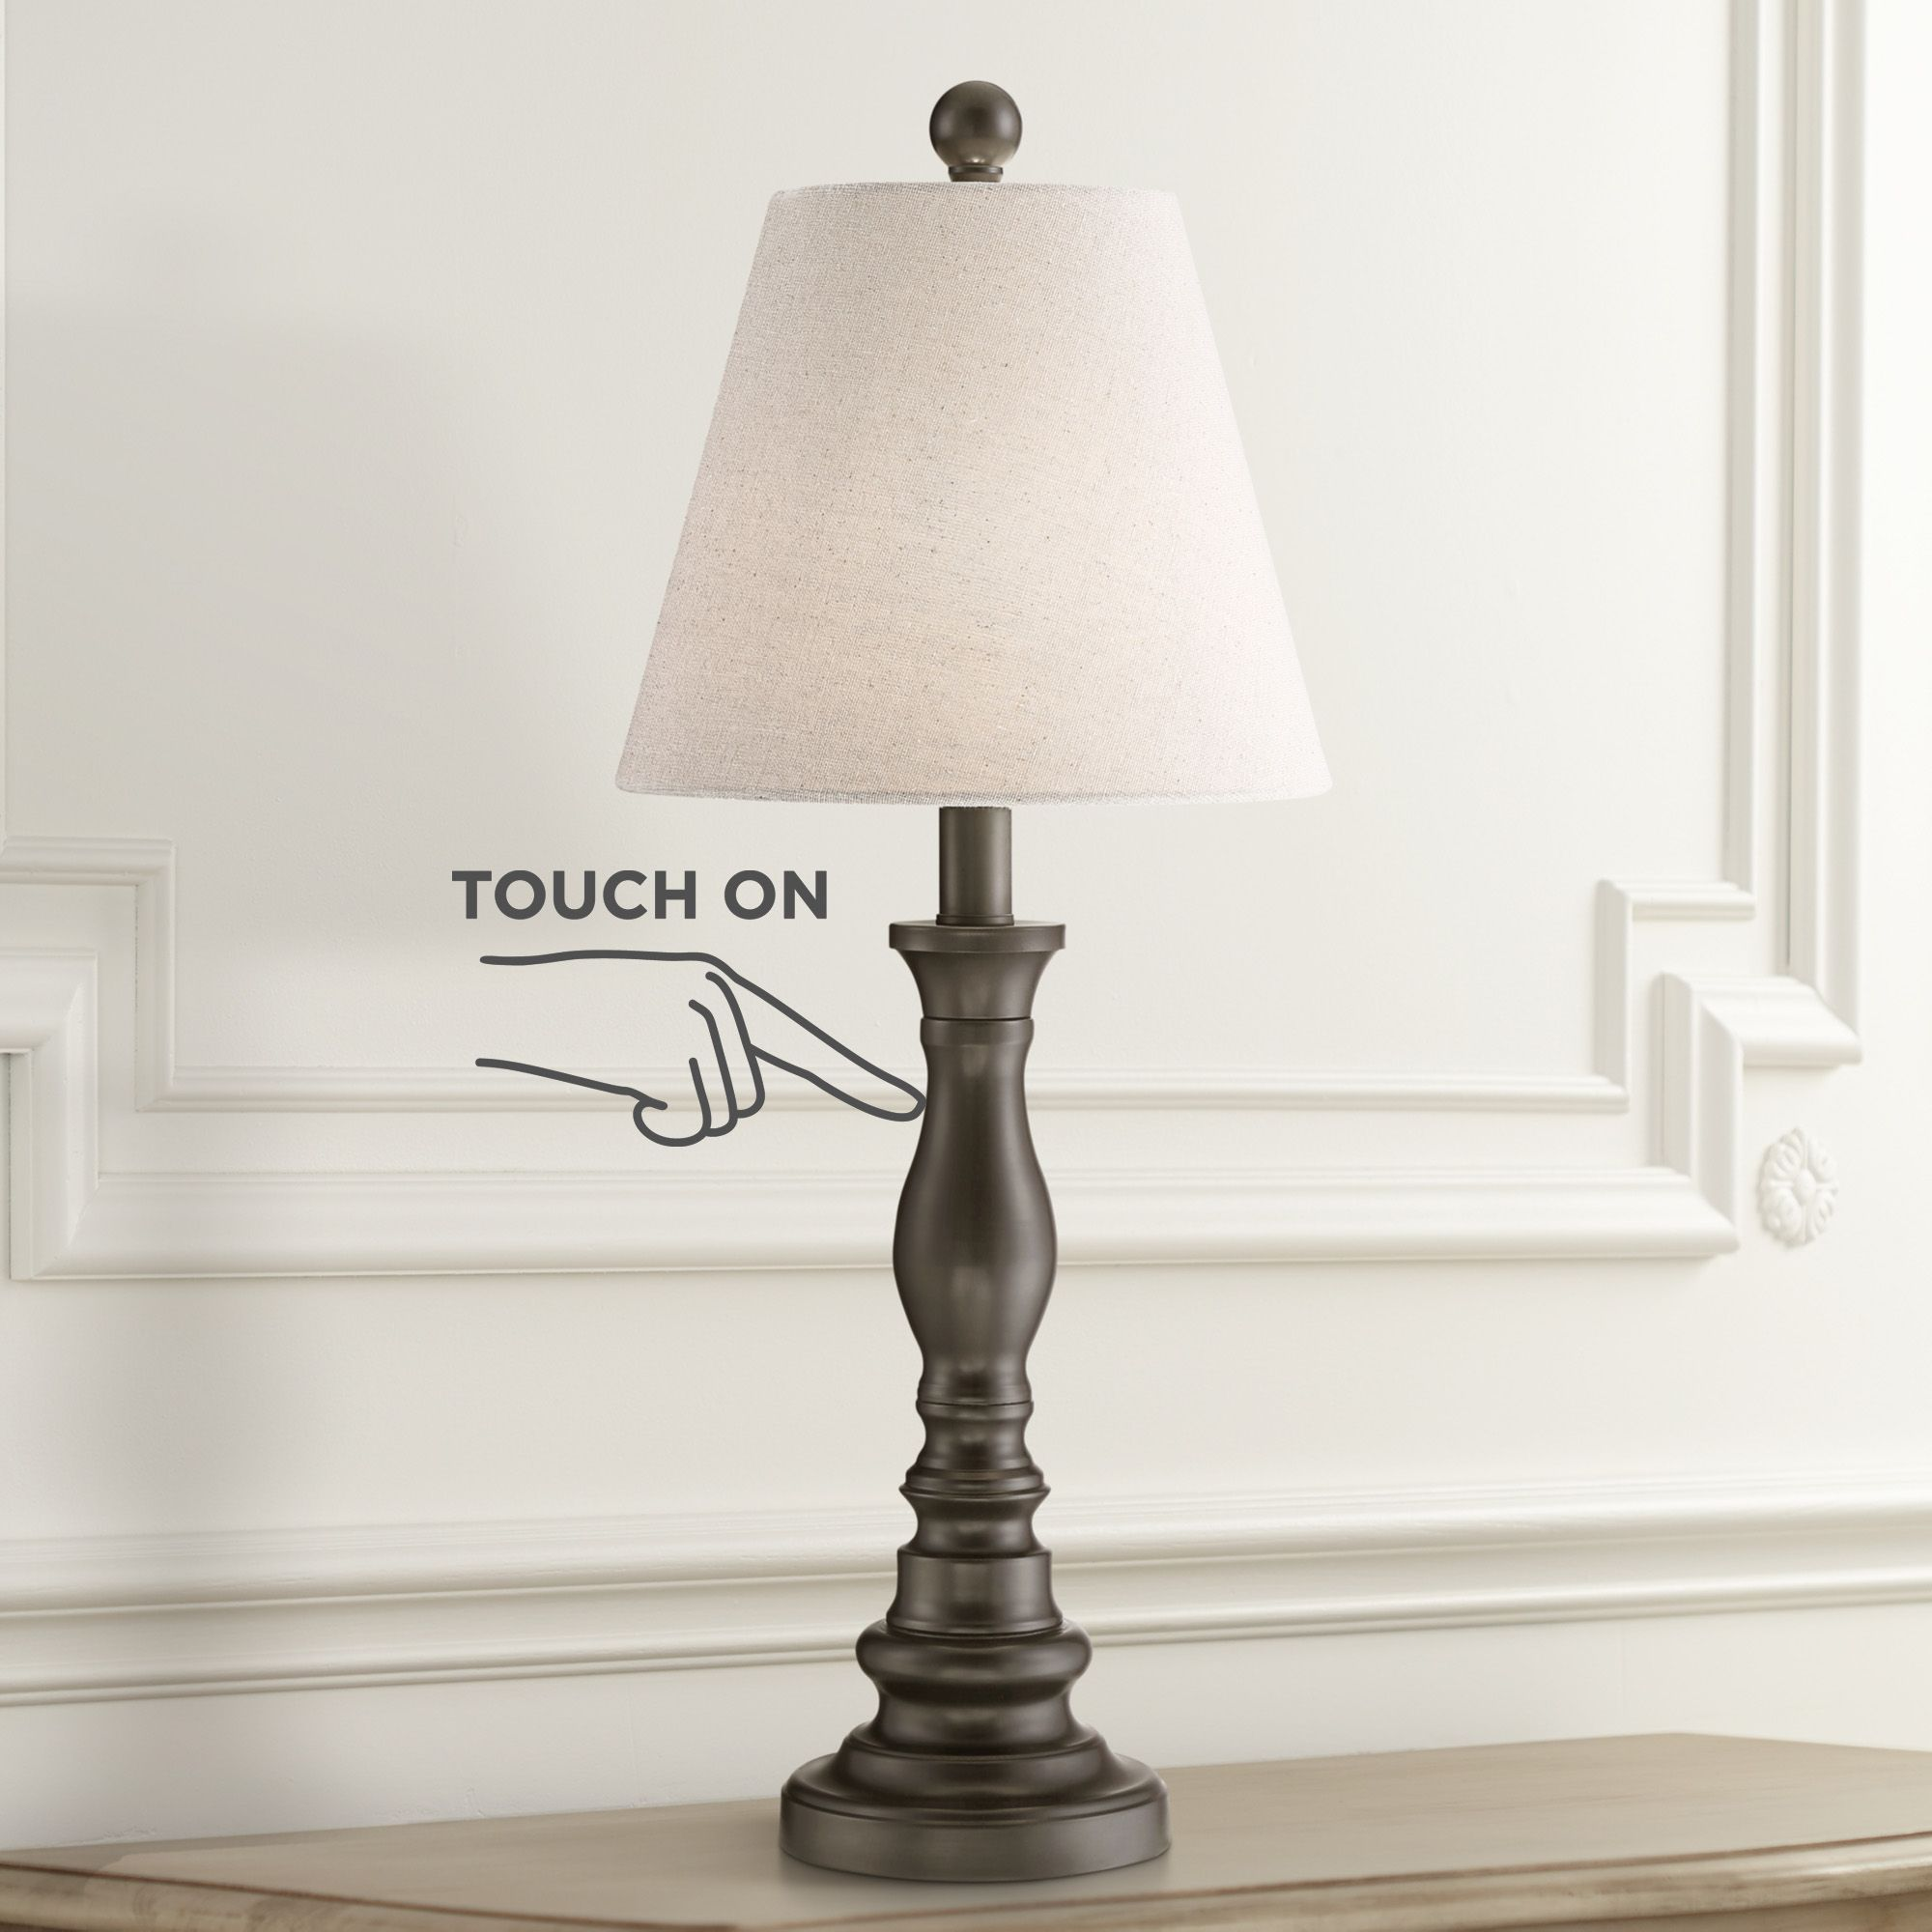 360 Lighting Traditional Desk Table Lamp Dark Bronze Metal Off White Empire Shade Touch On For Living Room Bedroom Office